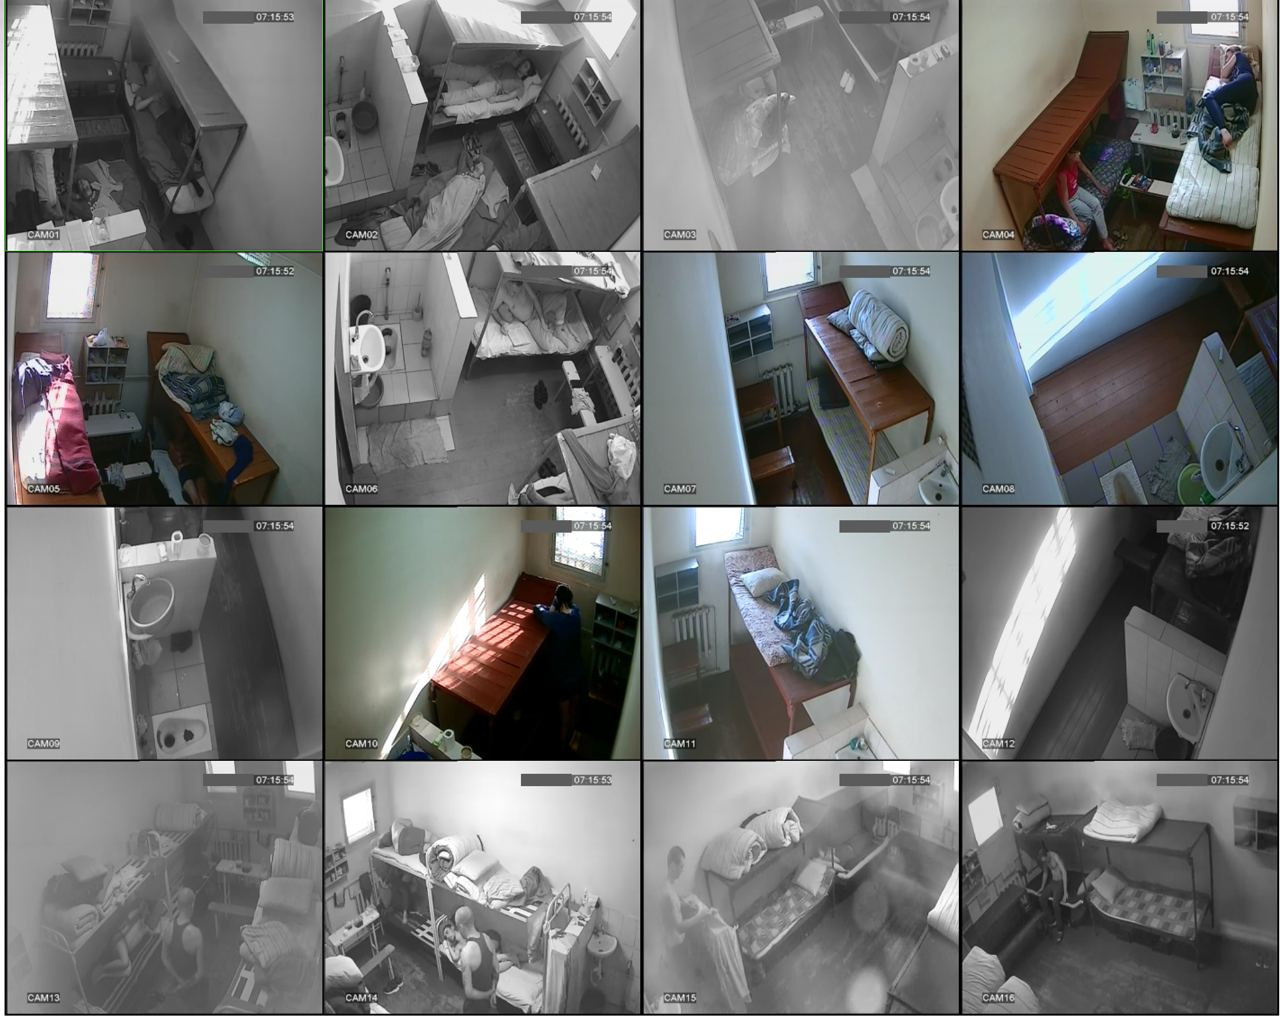 Pictures of a detention center